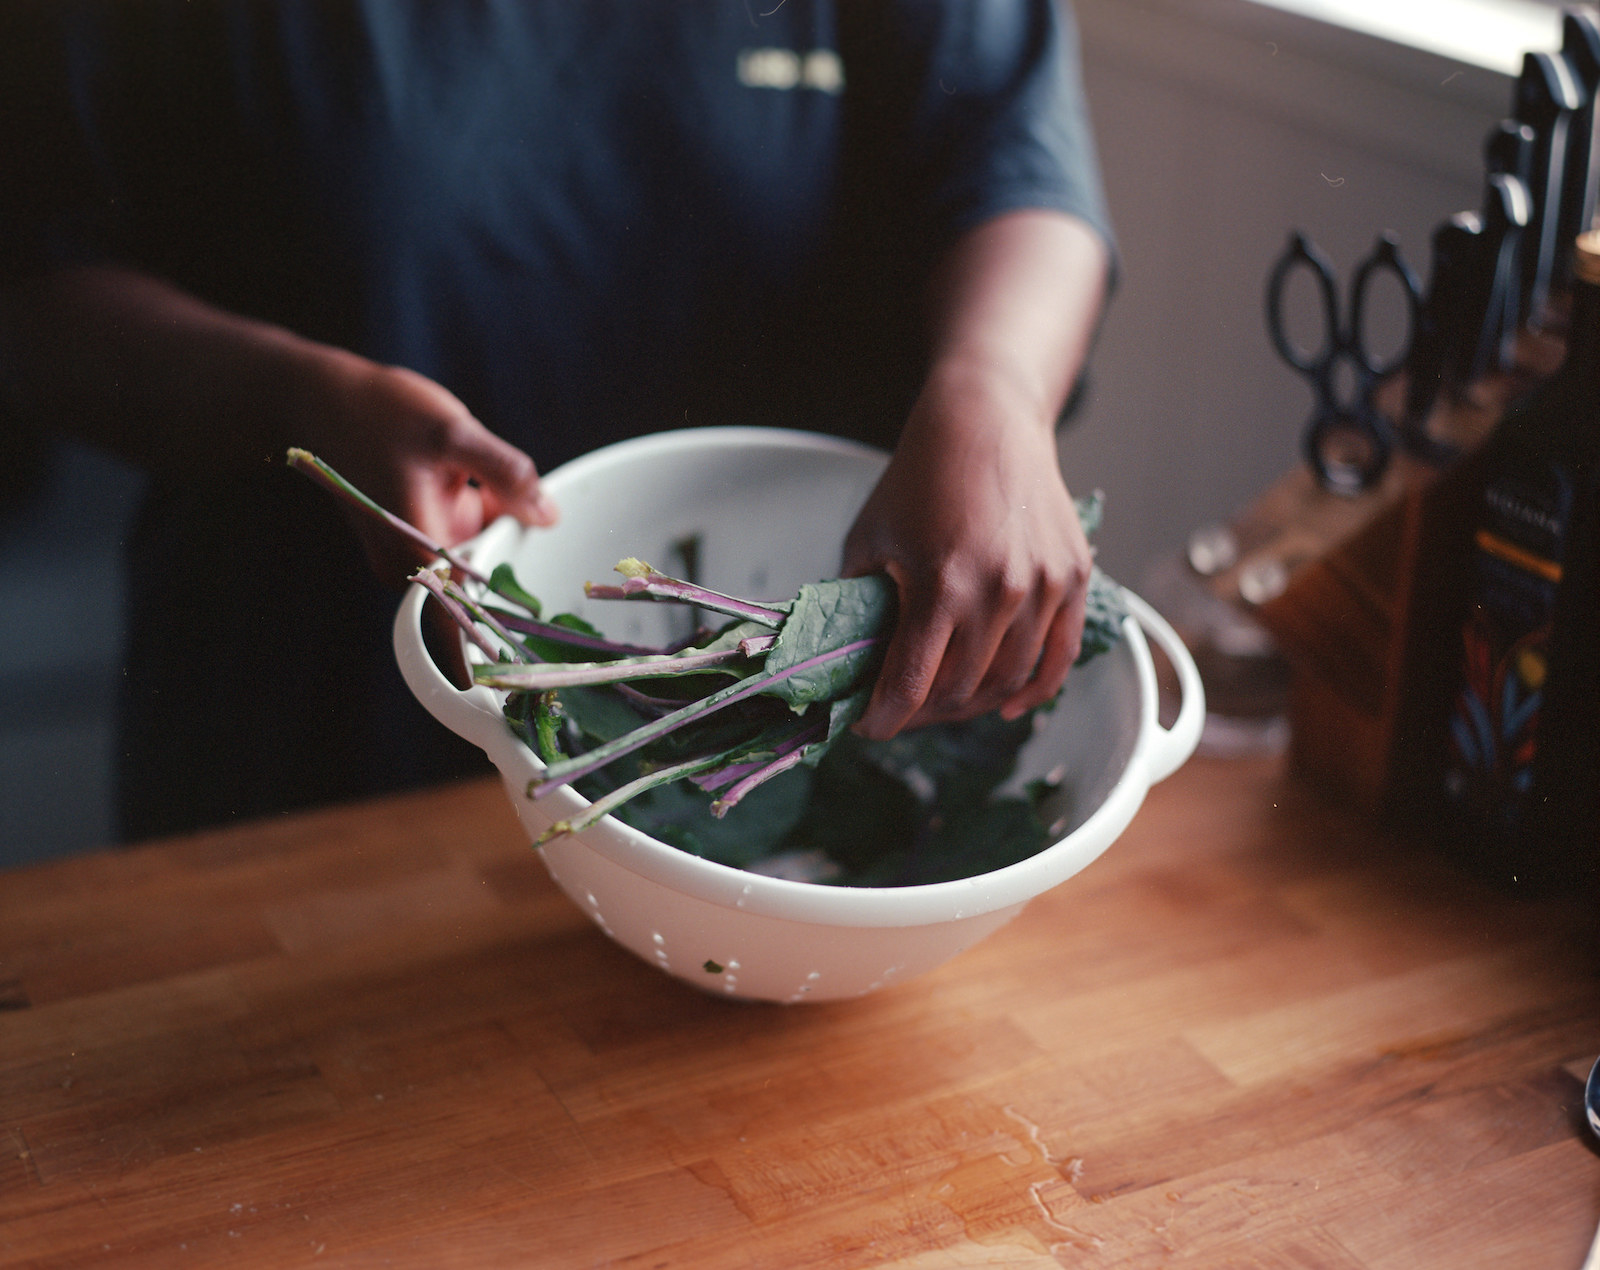 Two hands holding a colander with kale